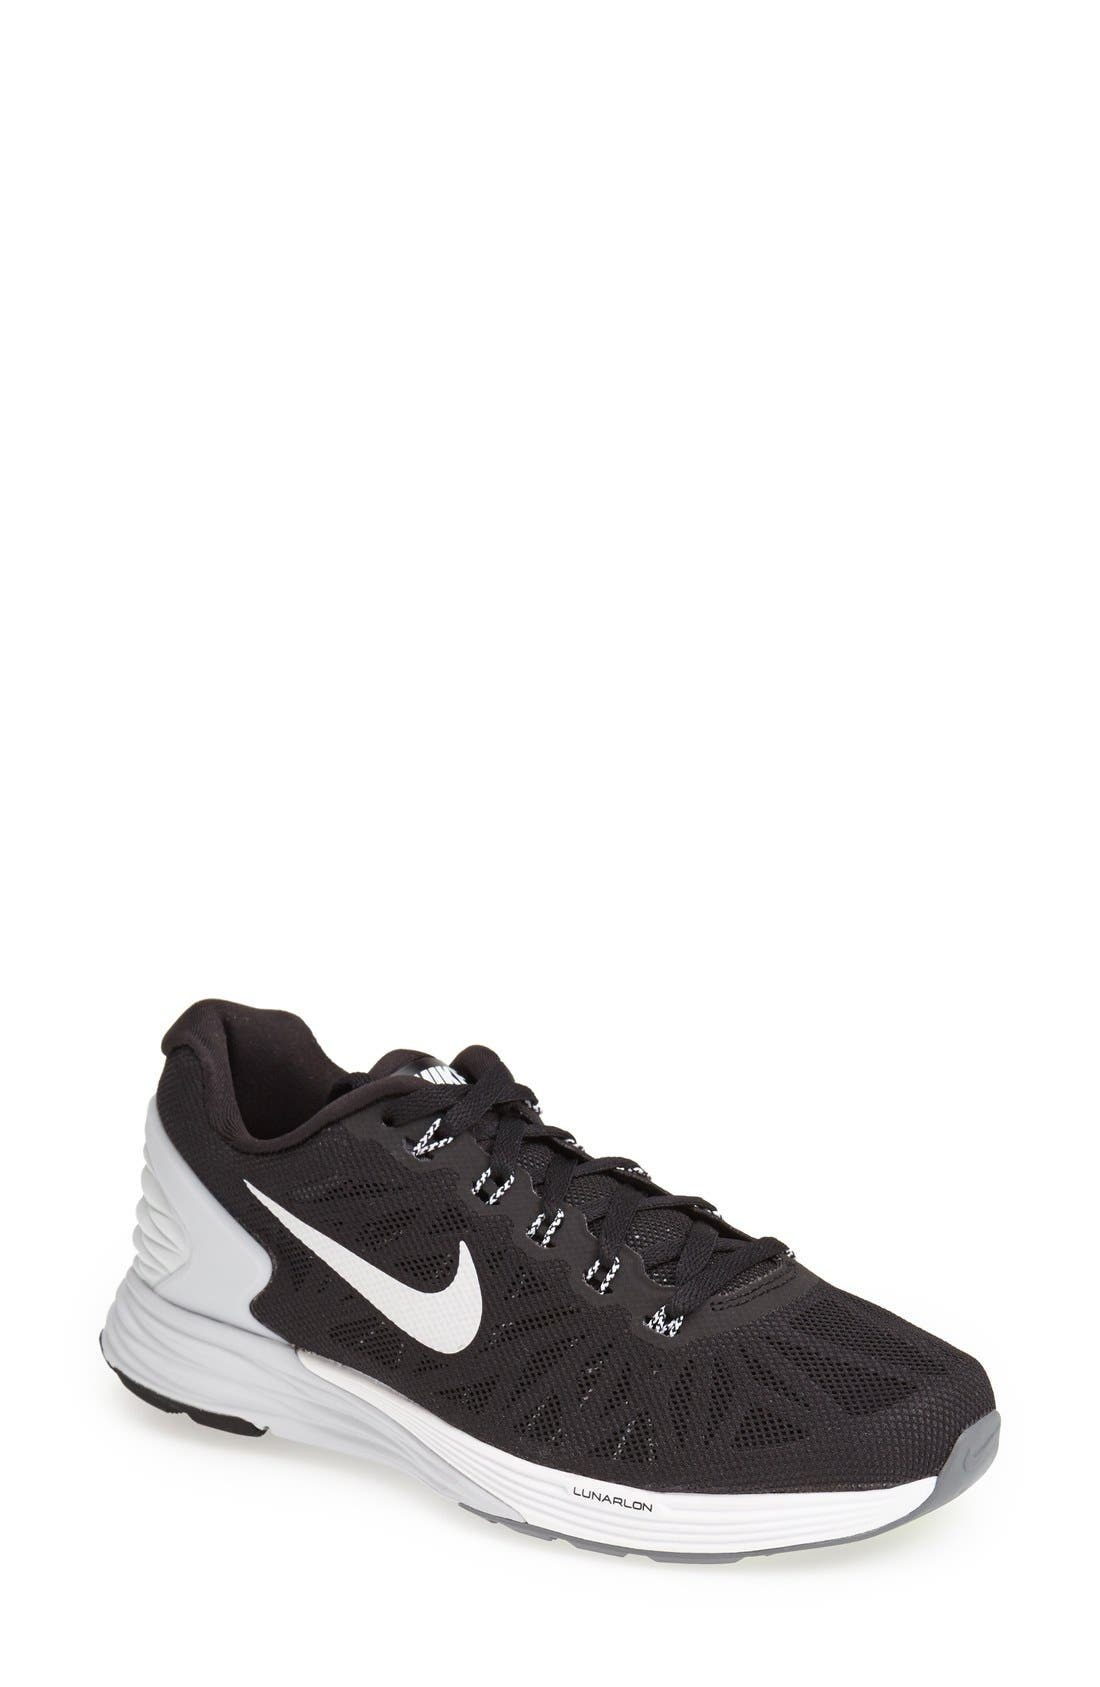 Alternate Image 1 Selected - Nike 'Lunarglide 6' Running Shoe (Women)